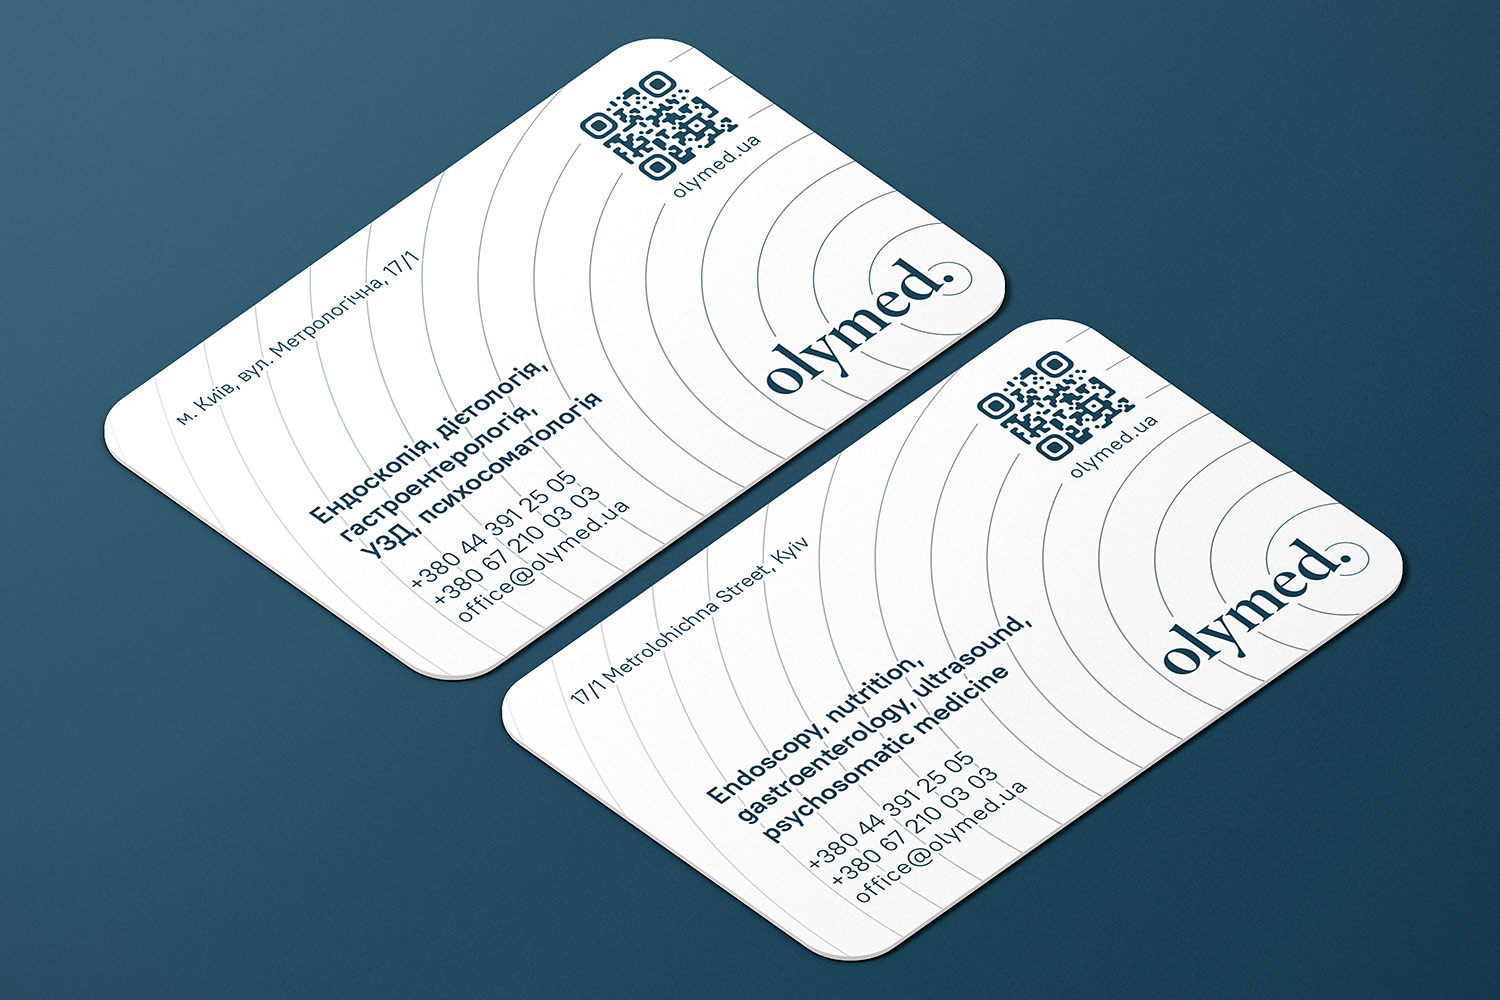 OLYMED clinic business card design. Endoscopy, nutrition, gastroenterology, ultrasound, psychosomatic medicine.